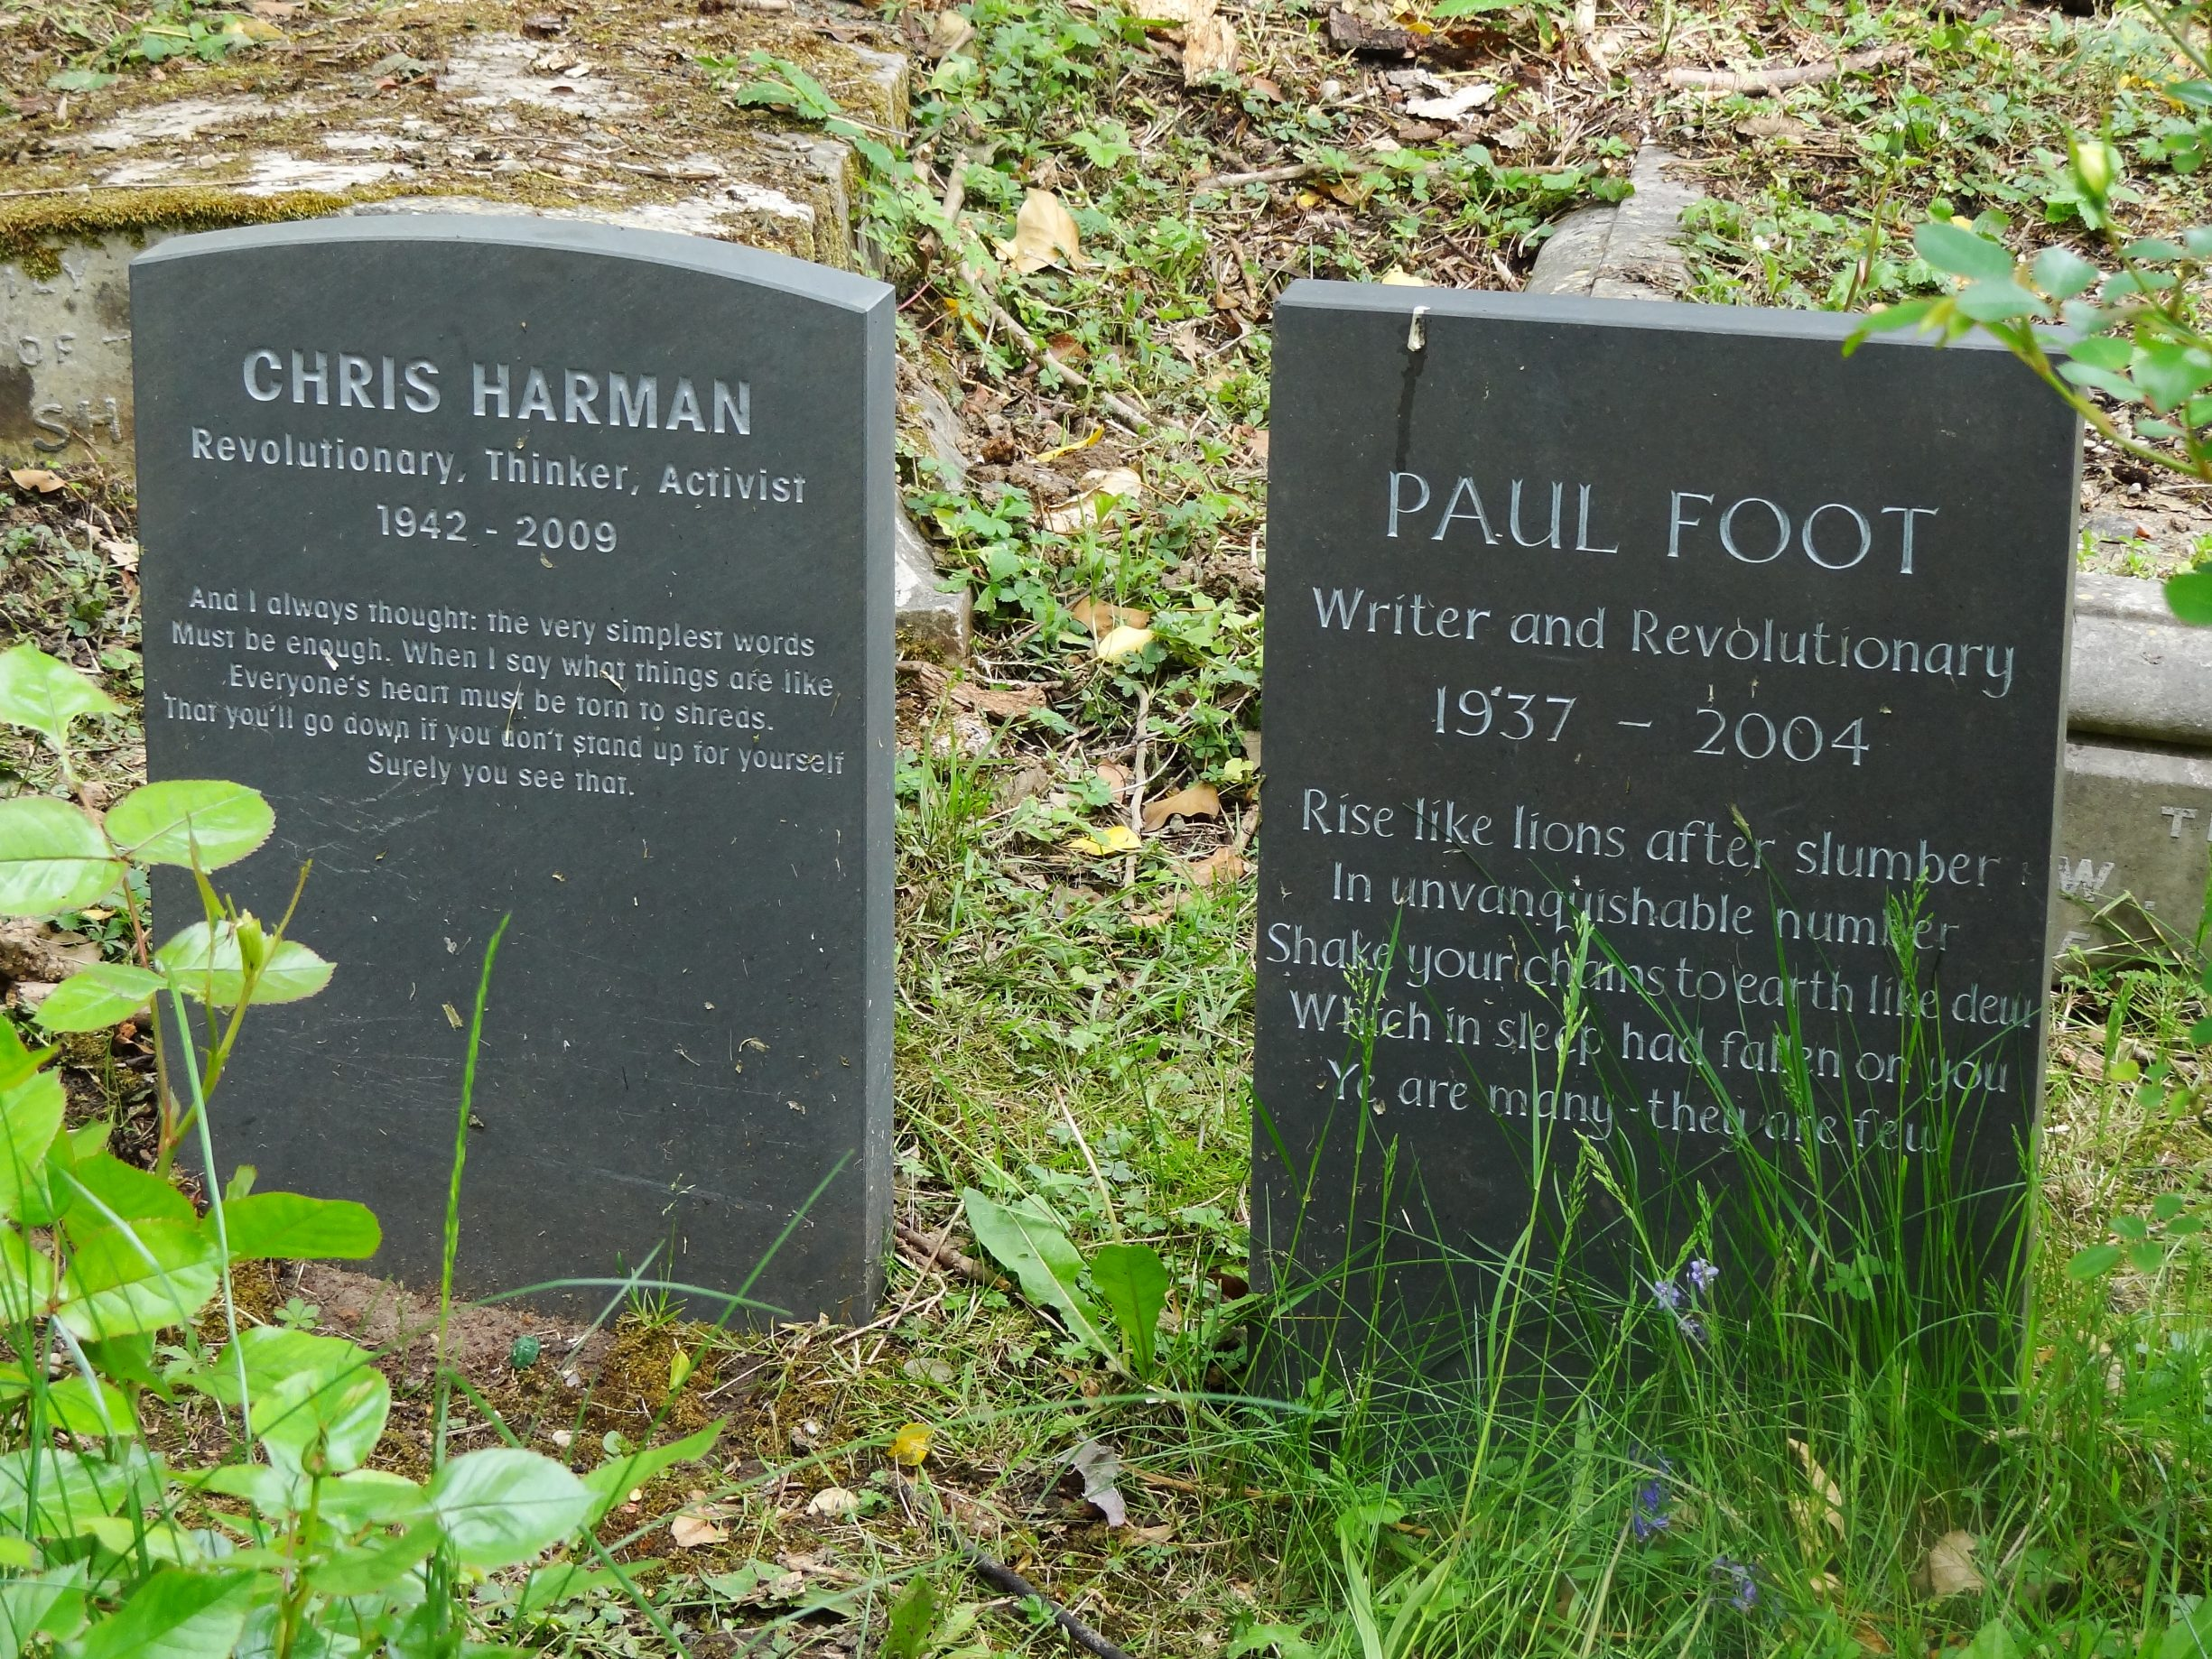 "Graves of Chris Harman and Paul Foot side by side at Highgate Cemetery in north London. Date: 26 May 2013. Author: Ben Sutherland from Crystal Palace, London, UK. (CC BY 2.0). Source: <a href=""https://commons.wikimedia.org/wiki/File:Graves_of_Chris_Harman_and_Paul_Foot_at_Highgate_Cemetery_in_north_London_(8854155734).jpg"">Wikimedia Commons.</a>"